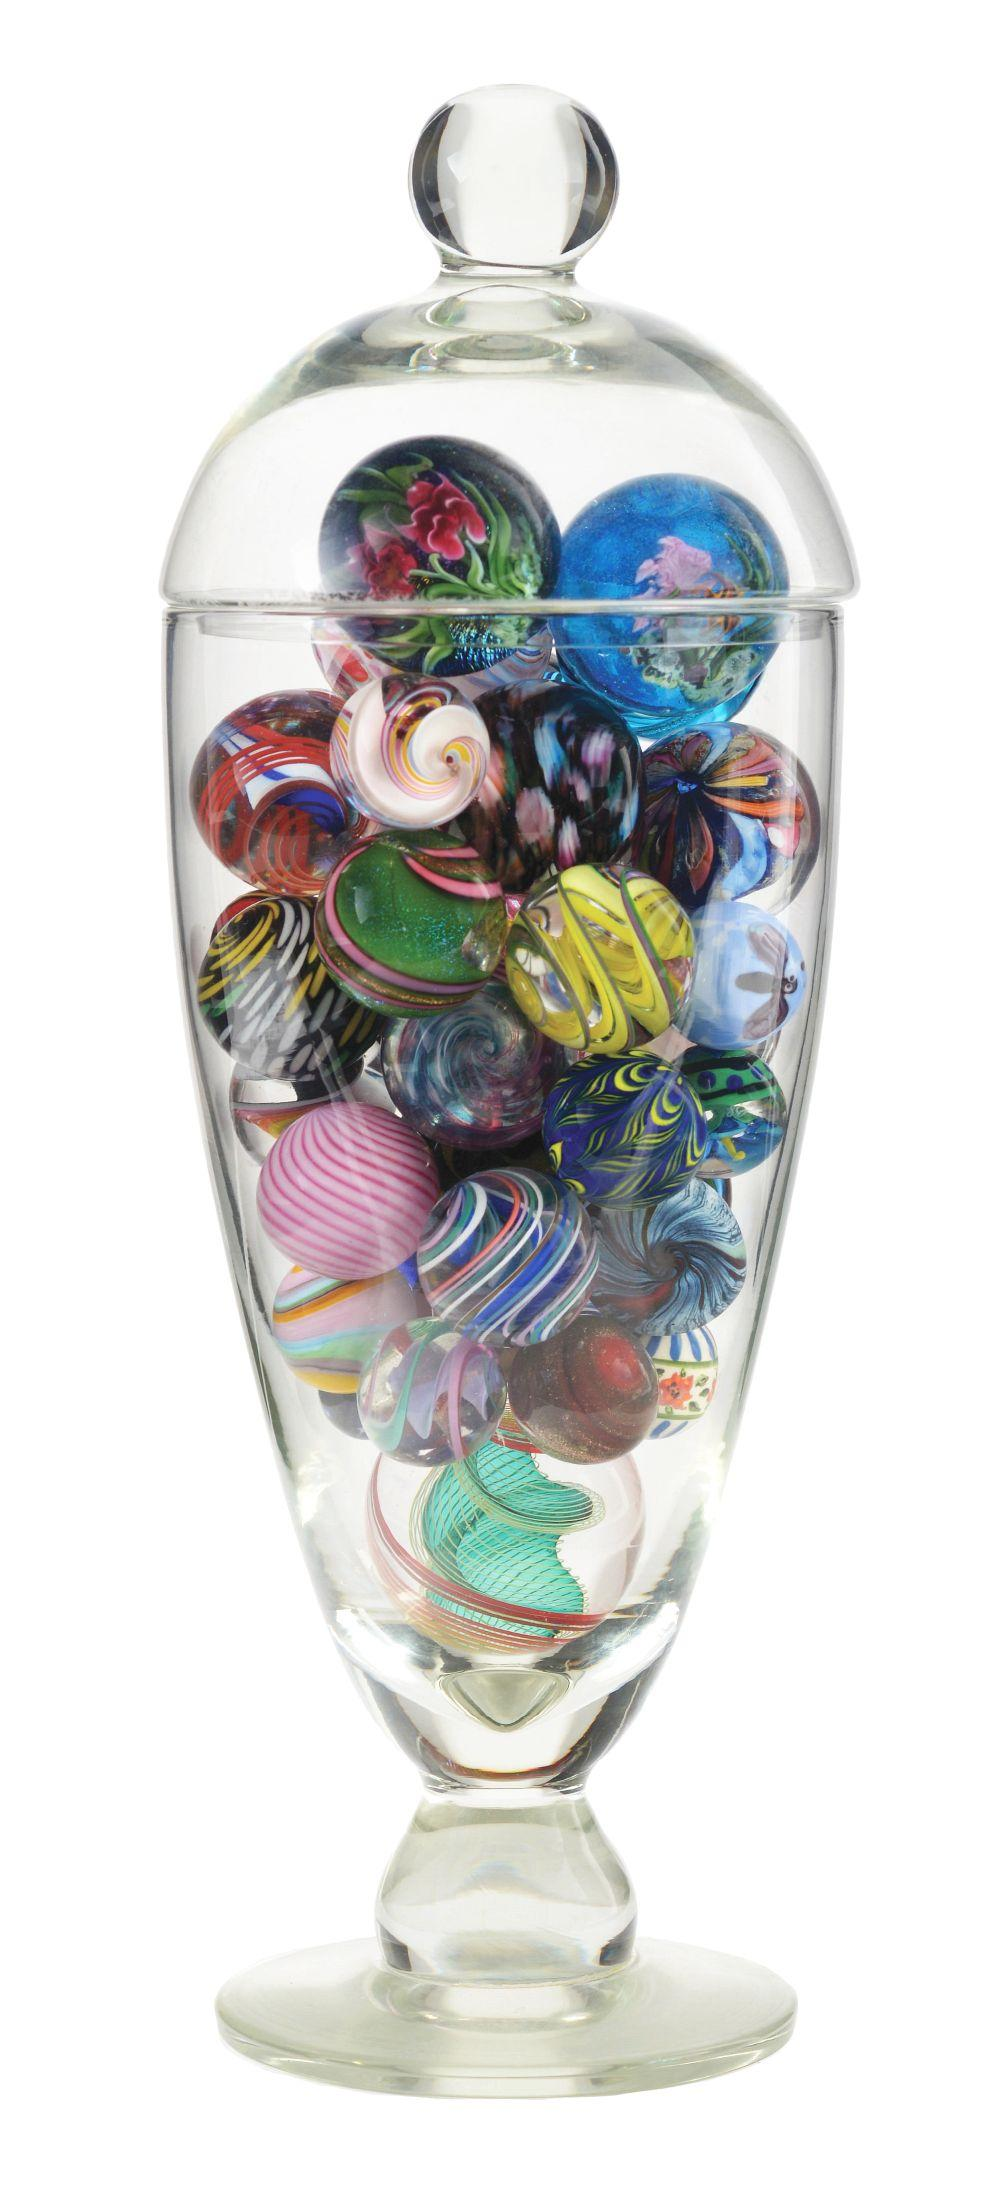 Medium Sized Jar of Contemporary Marbles.